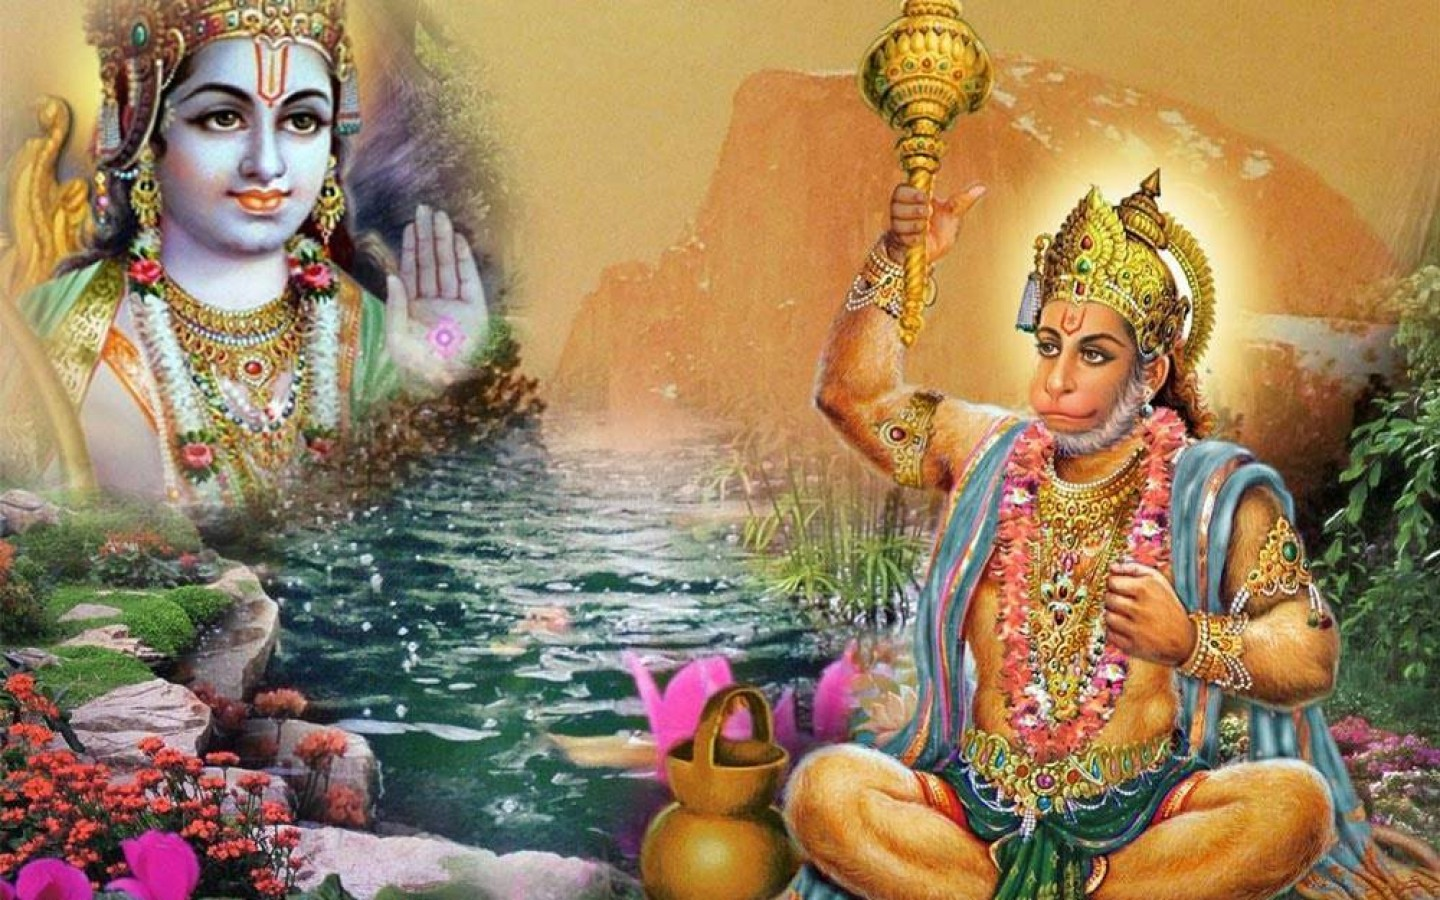 Aarti Hanuman Ji Ki Song - Download Aarti Sangrah Song ...